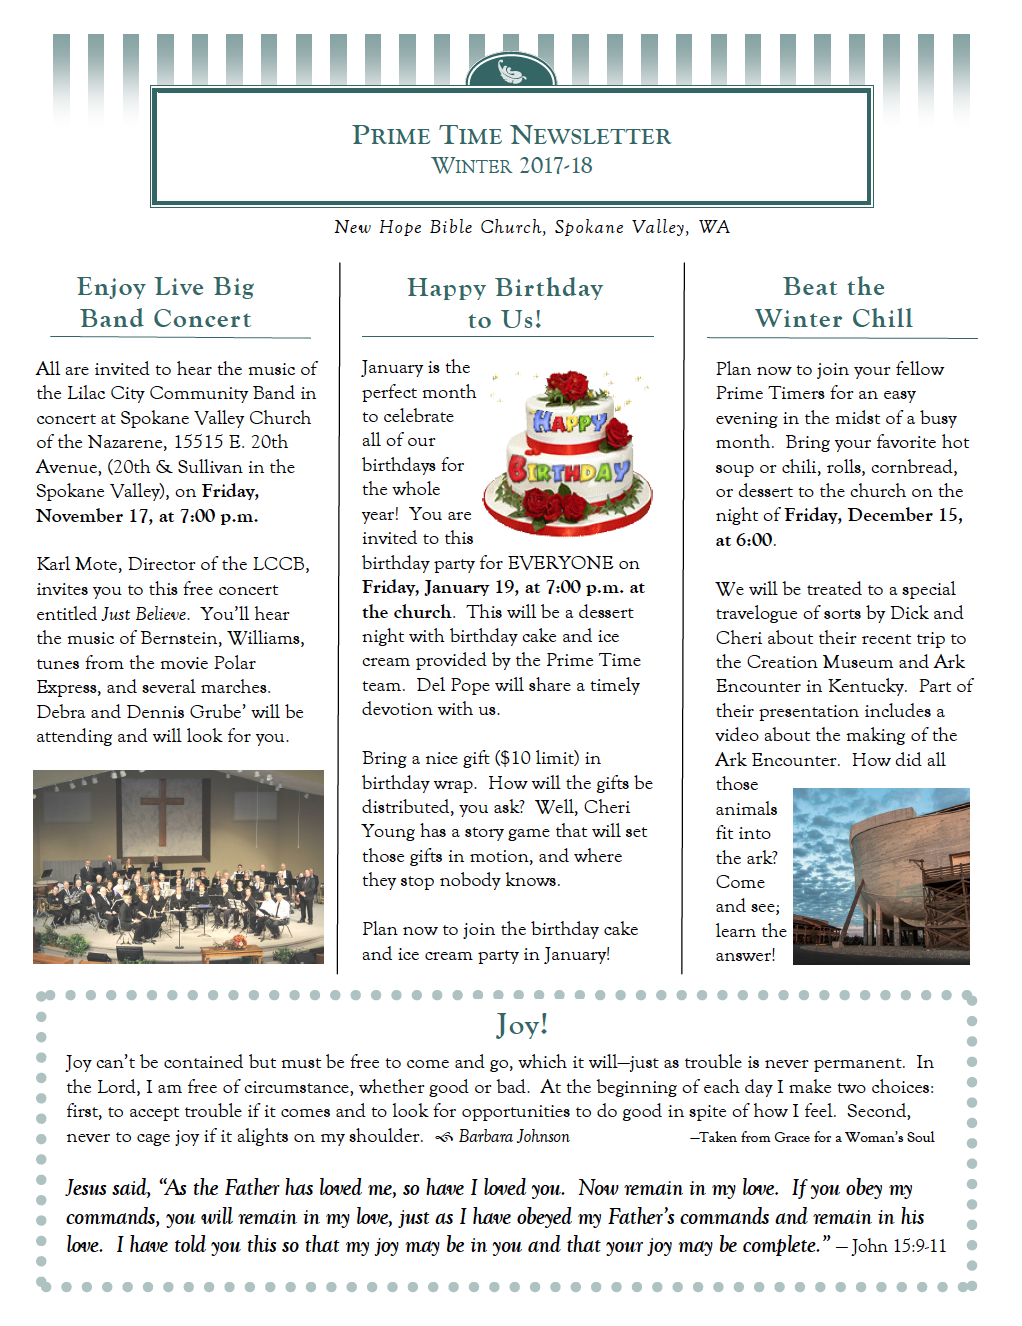 Winter 2017/18 Newsletter